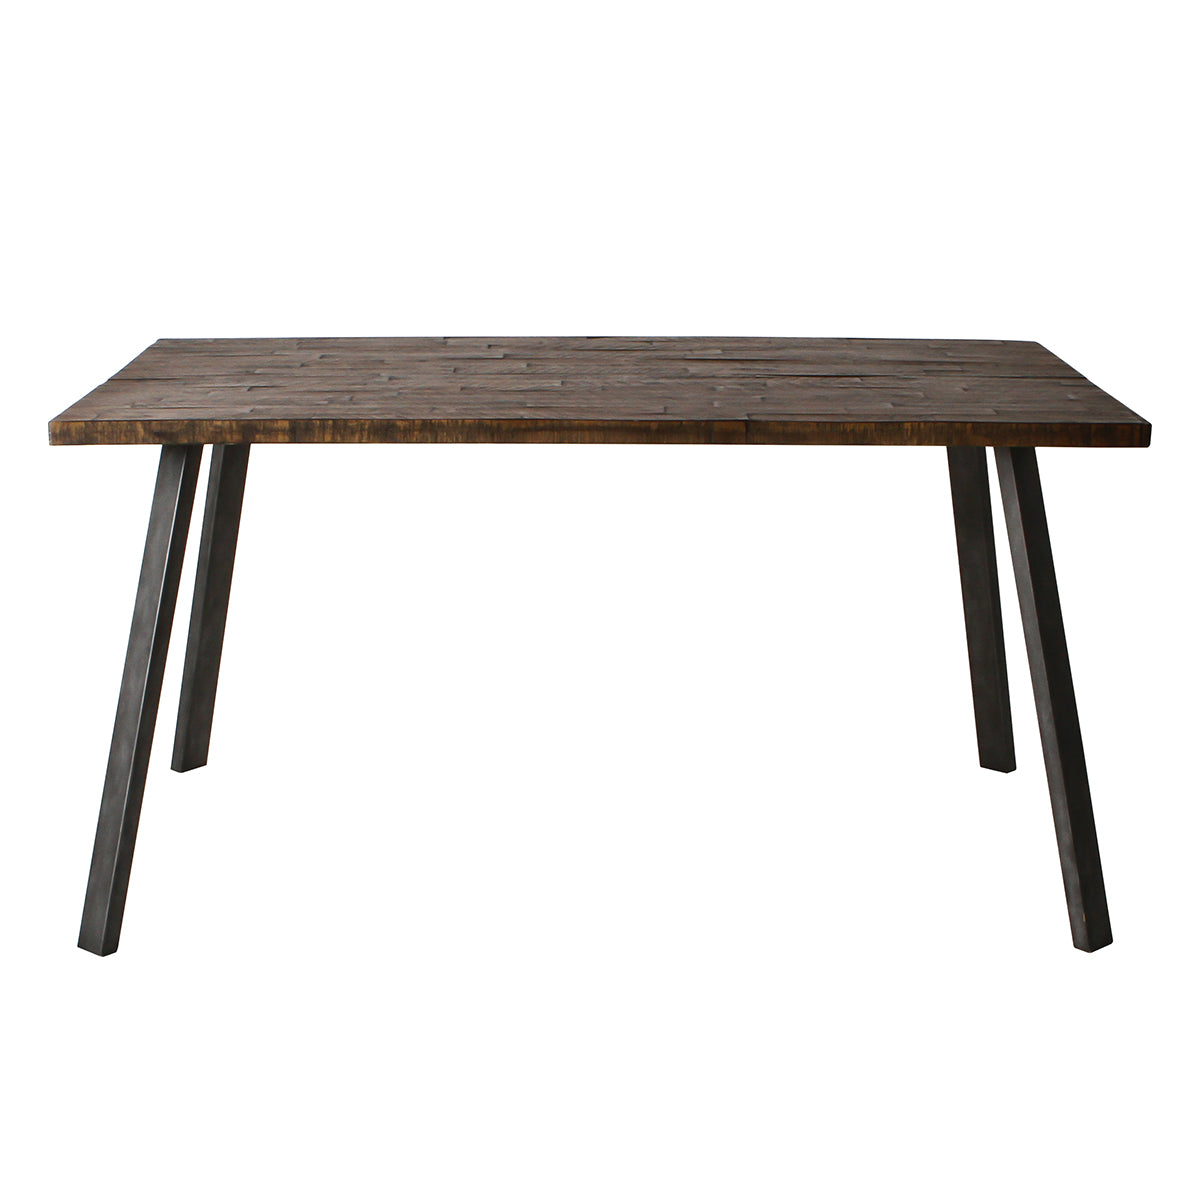 Somers Rectangular Dining Table Rustic - Ezzo